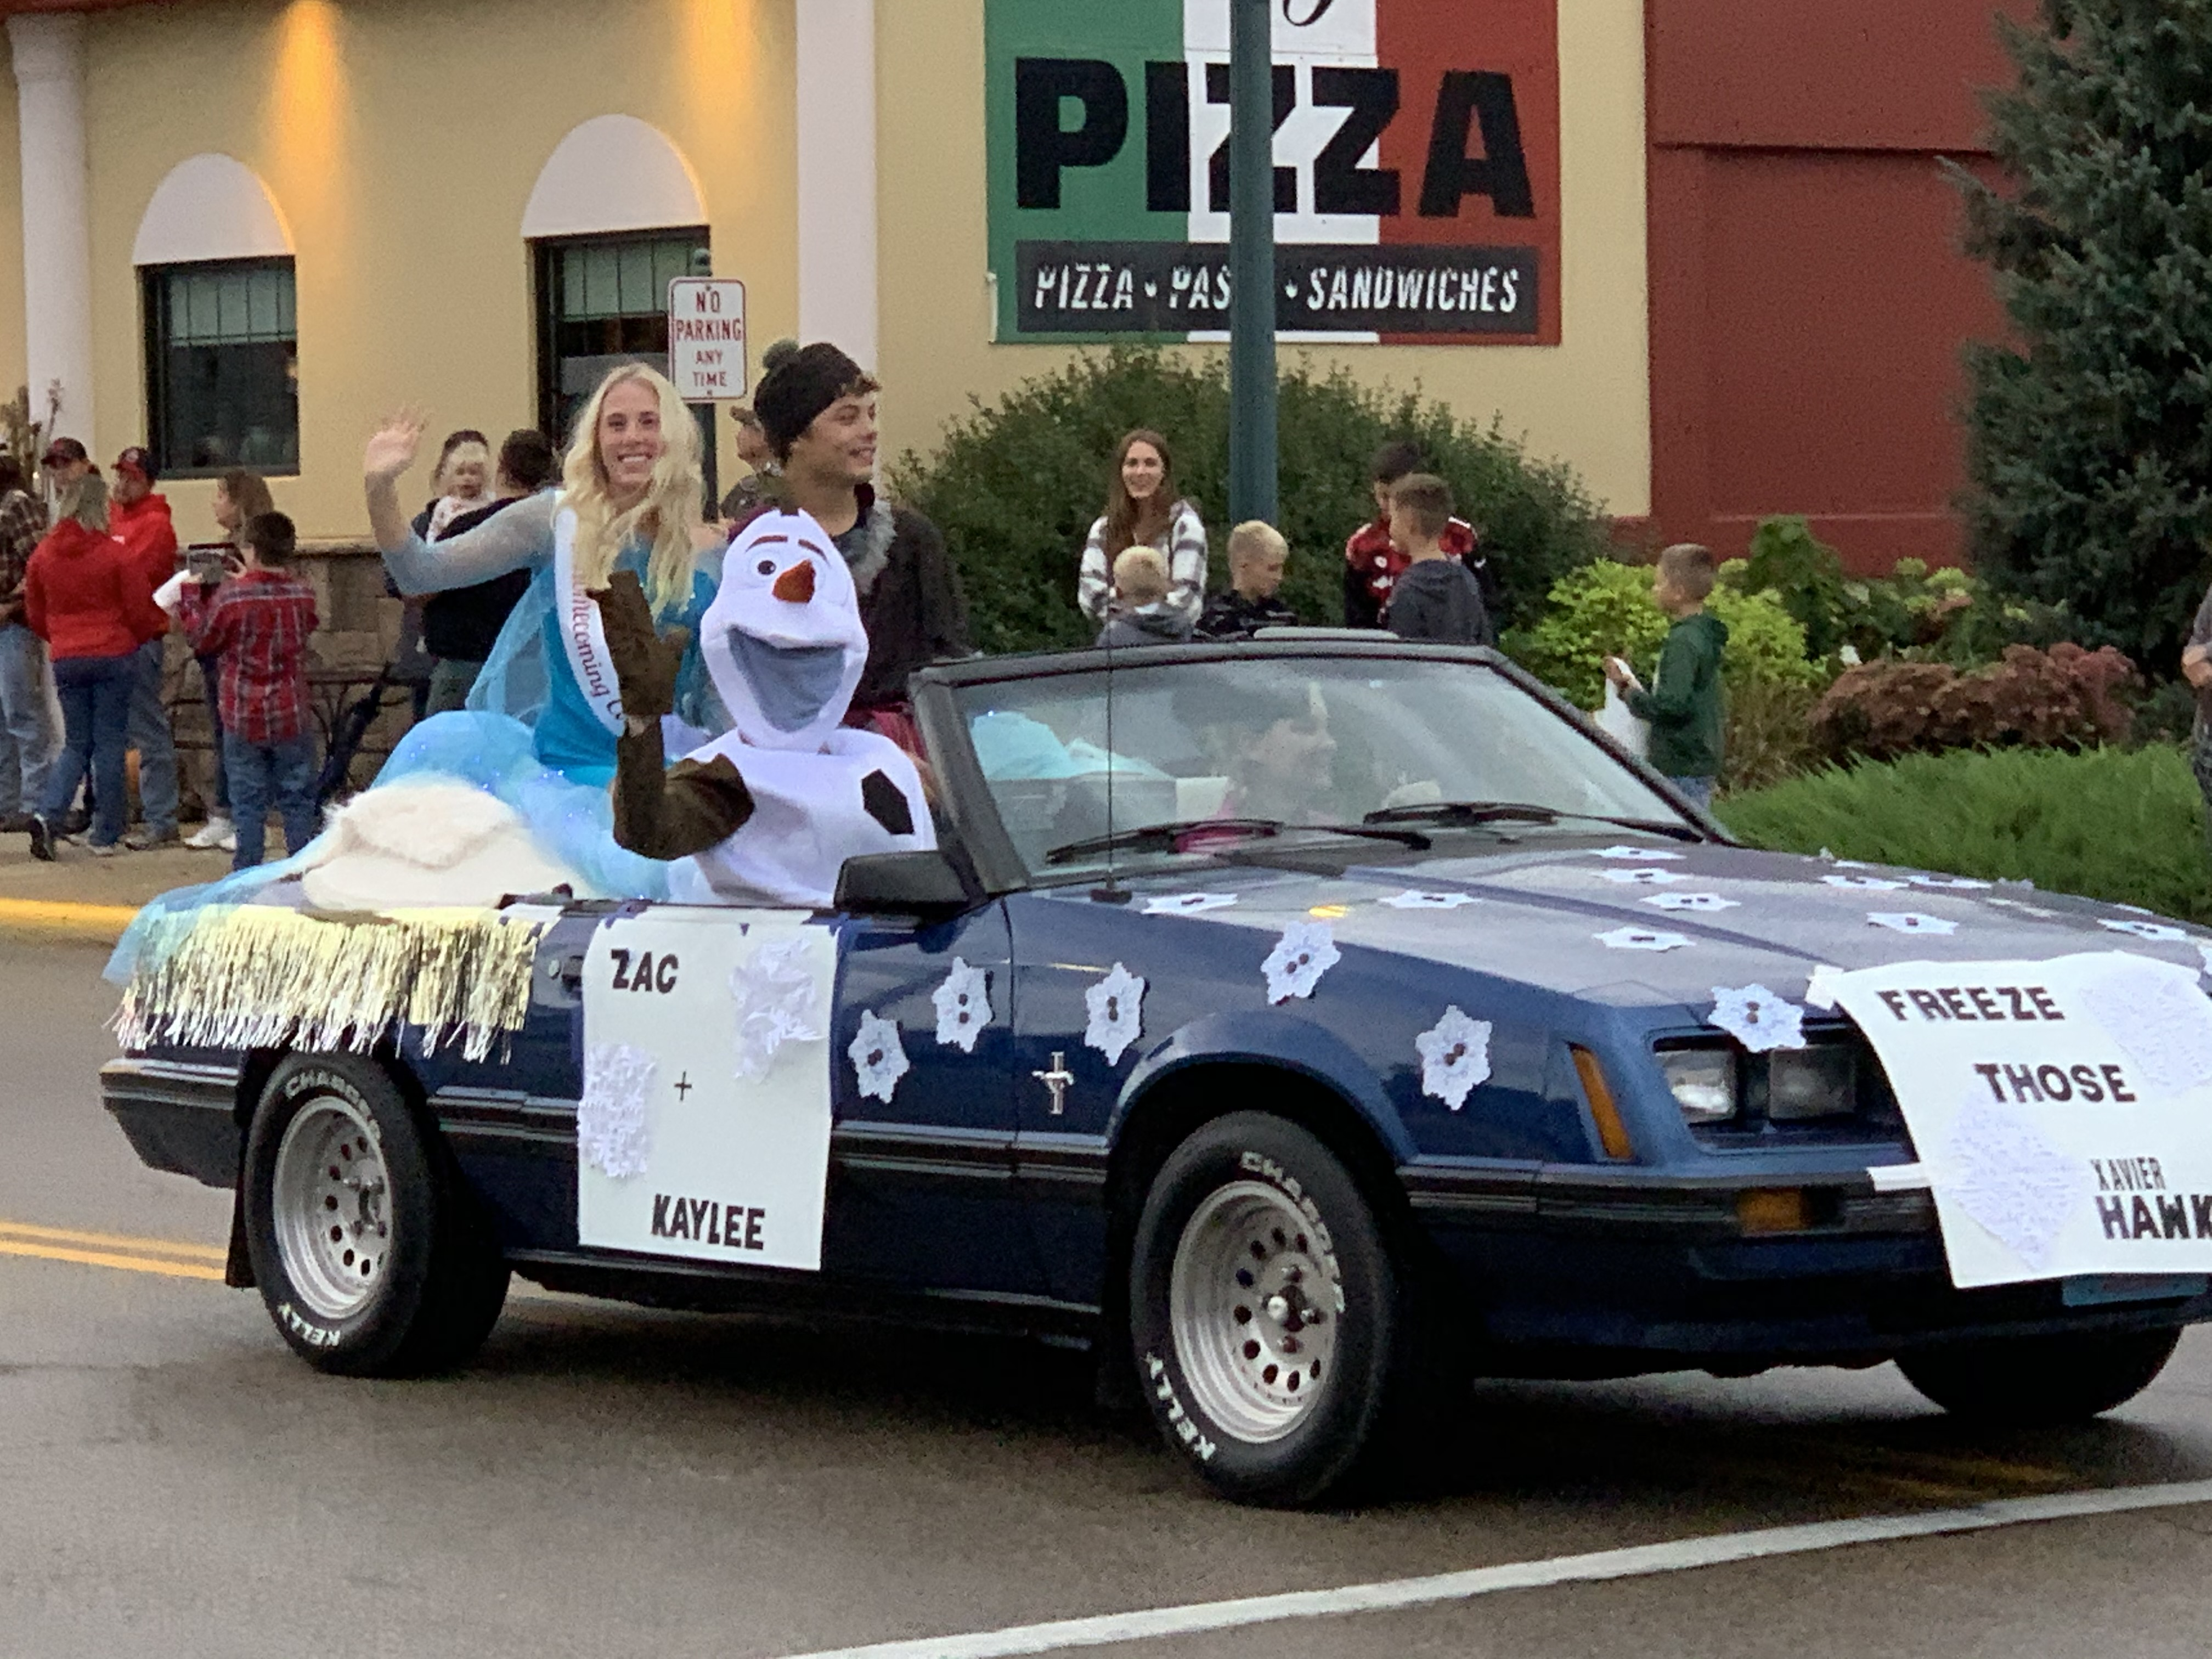 """In an effort to """"freeze"""" the rival Xavier Hawks, a float containing the """"Frozen"""" character Olaf greets visitors on Main Street during the Sept. 24 homecoming parade.Luke Reimer   NEW Media"""